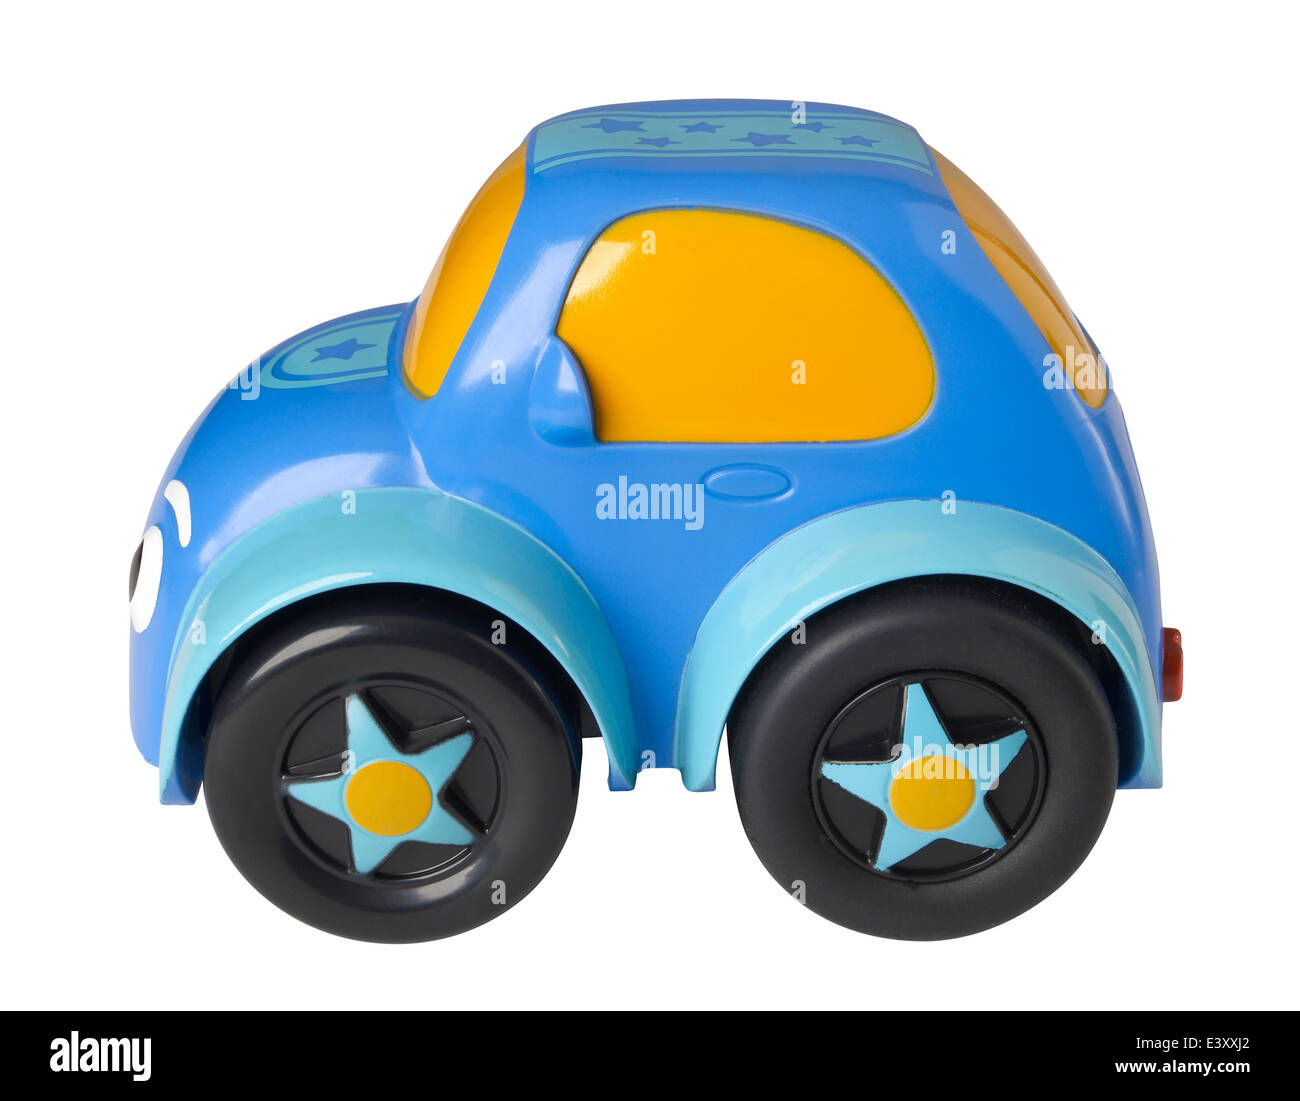 Toy Car - Stock Image